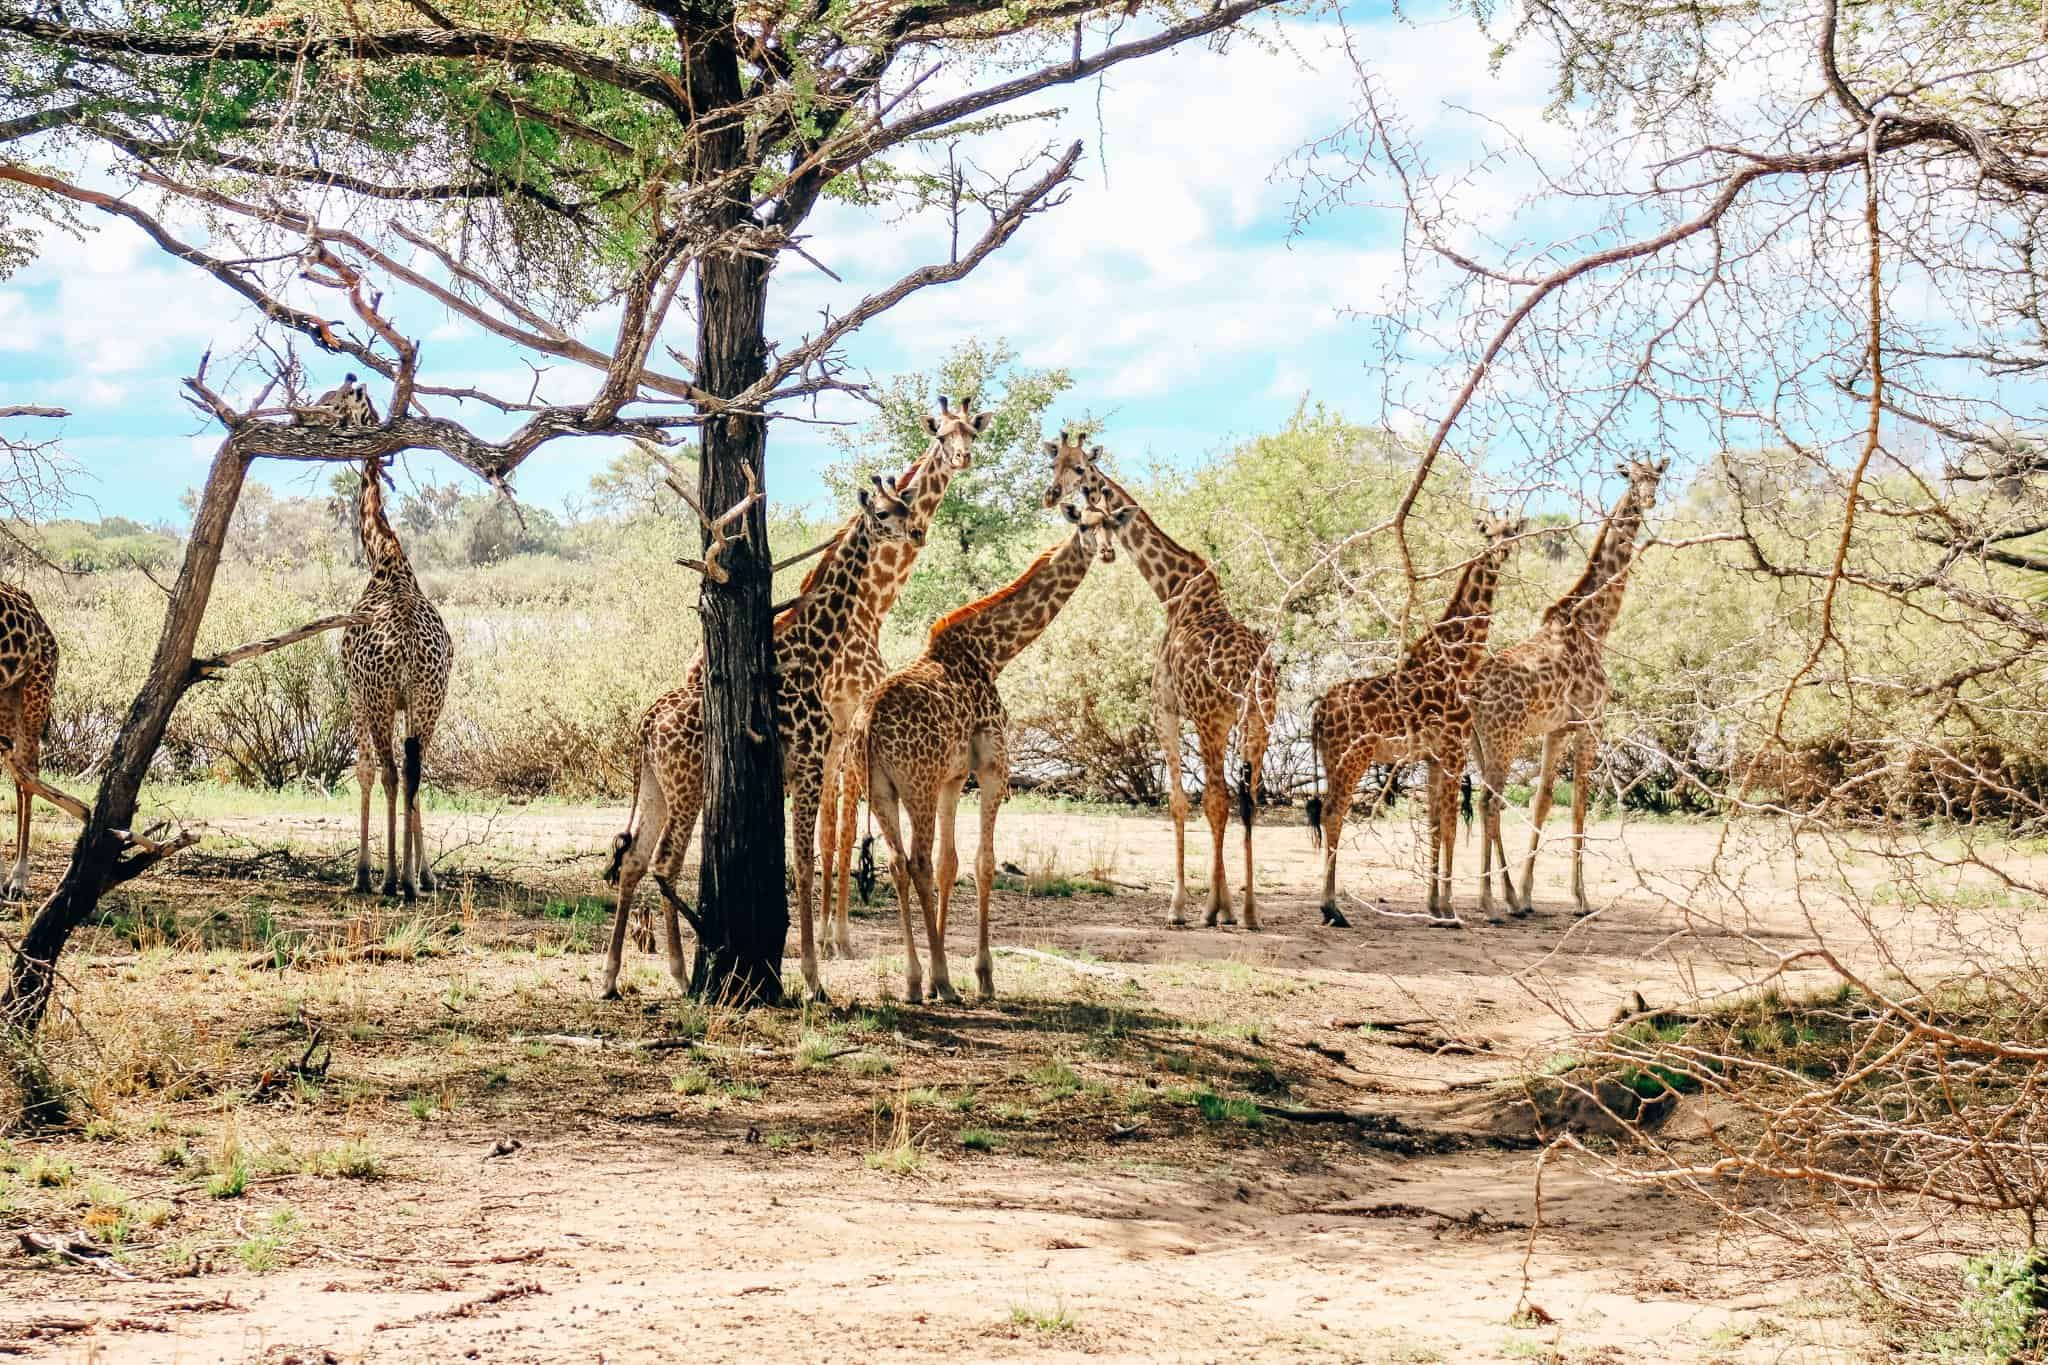 Tower of Giraffes on African Safari Drive in the Selous Game Reserve